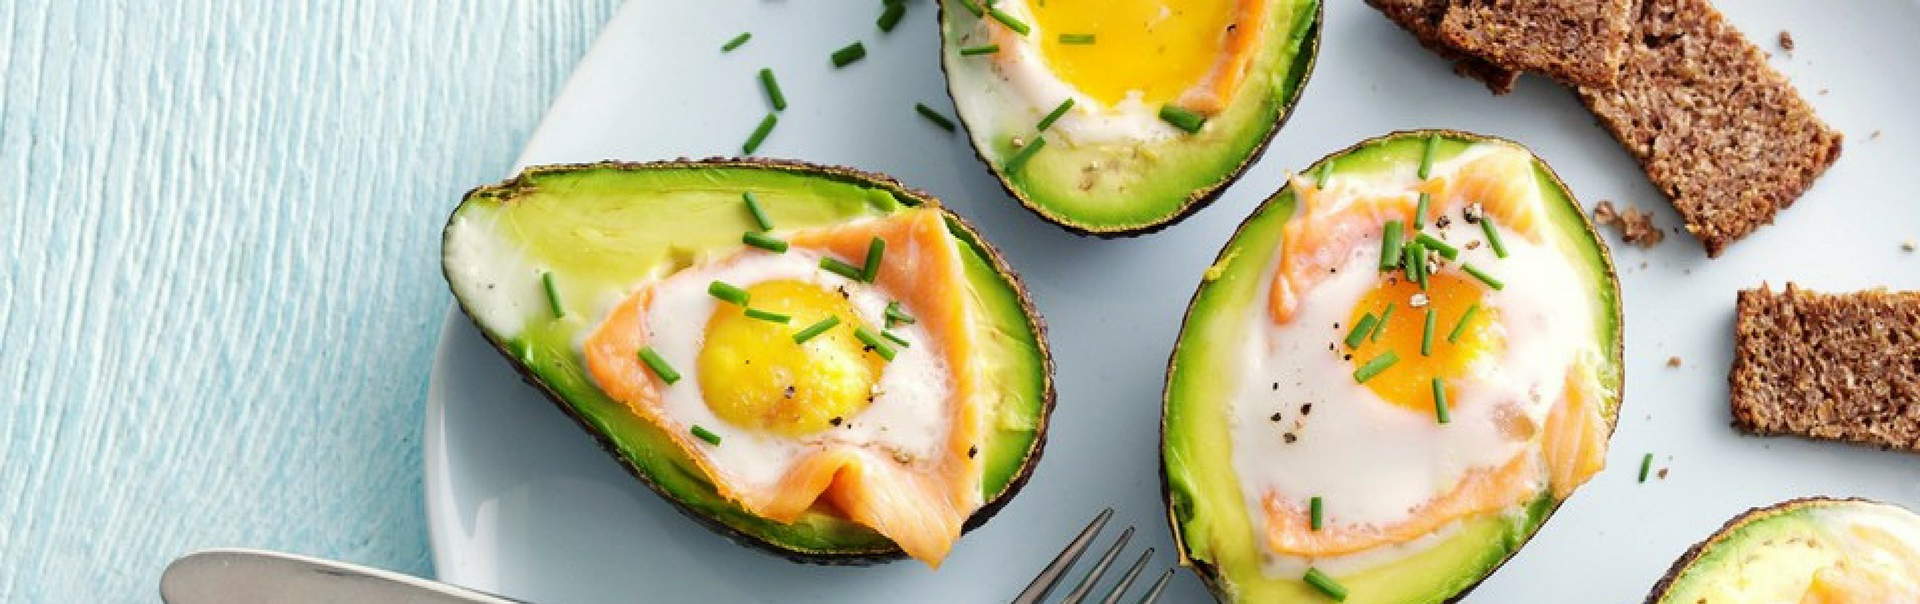 Baked avocado with smoked salmon & egg